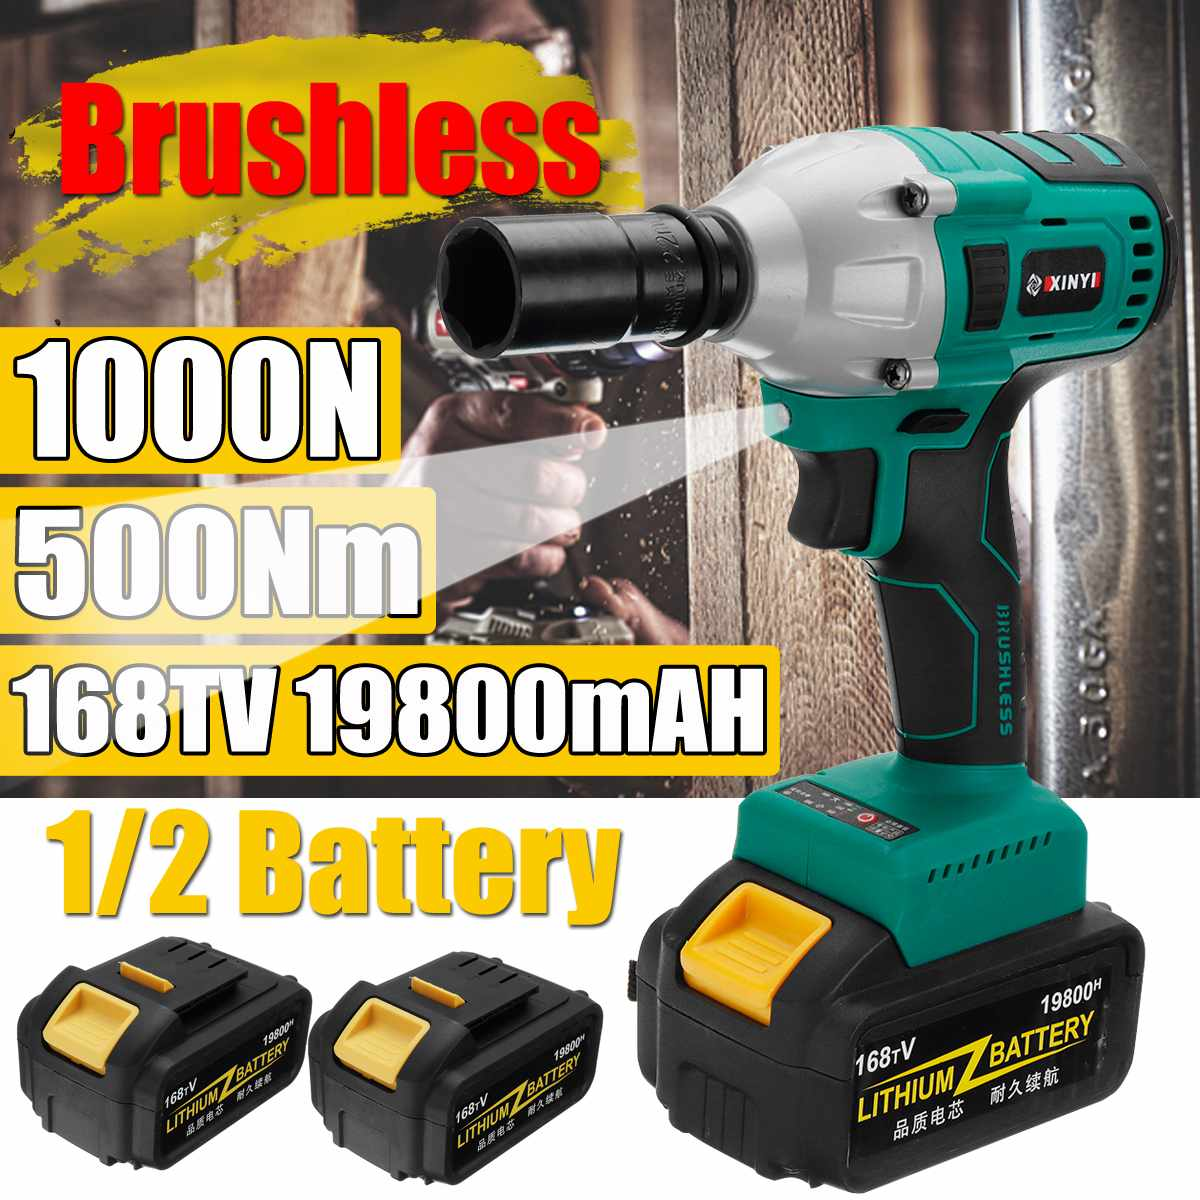 168V 500Nm Brushless Cordless Electric Wrench Impact Driver Power Tool 19800mAh Rechargeable Lithium Battery Household Drill168V 500Nm Brushless Cordless Electric Wrench Impact Driver Power Tool 19800mAh Rechargeable Lithium Battery Household Drill